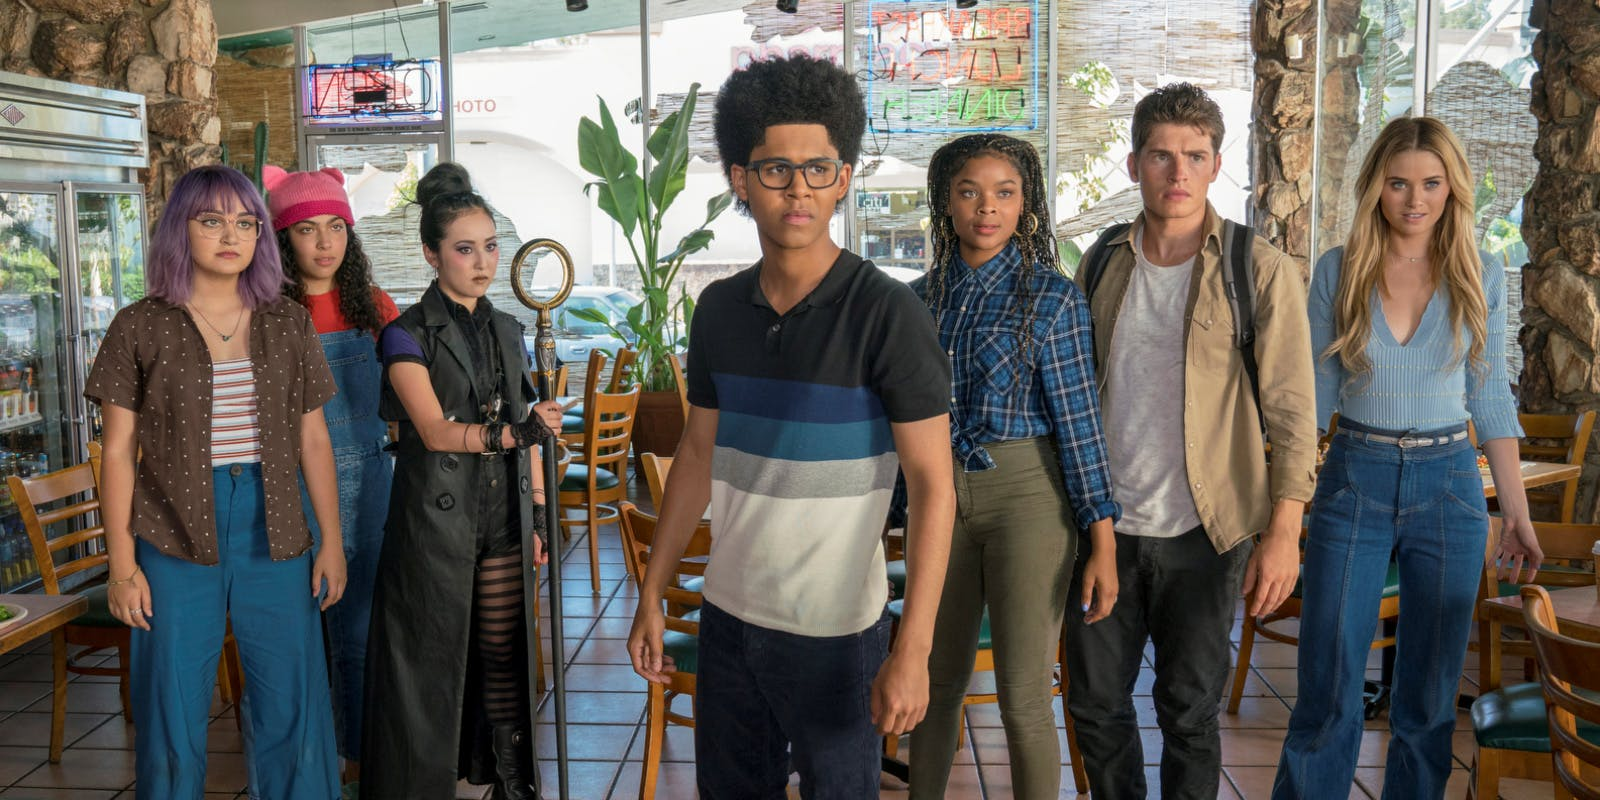 Marvel's Runaways Season 2